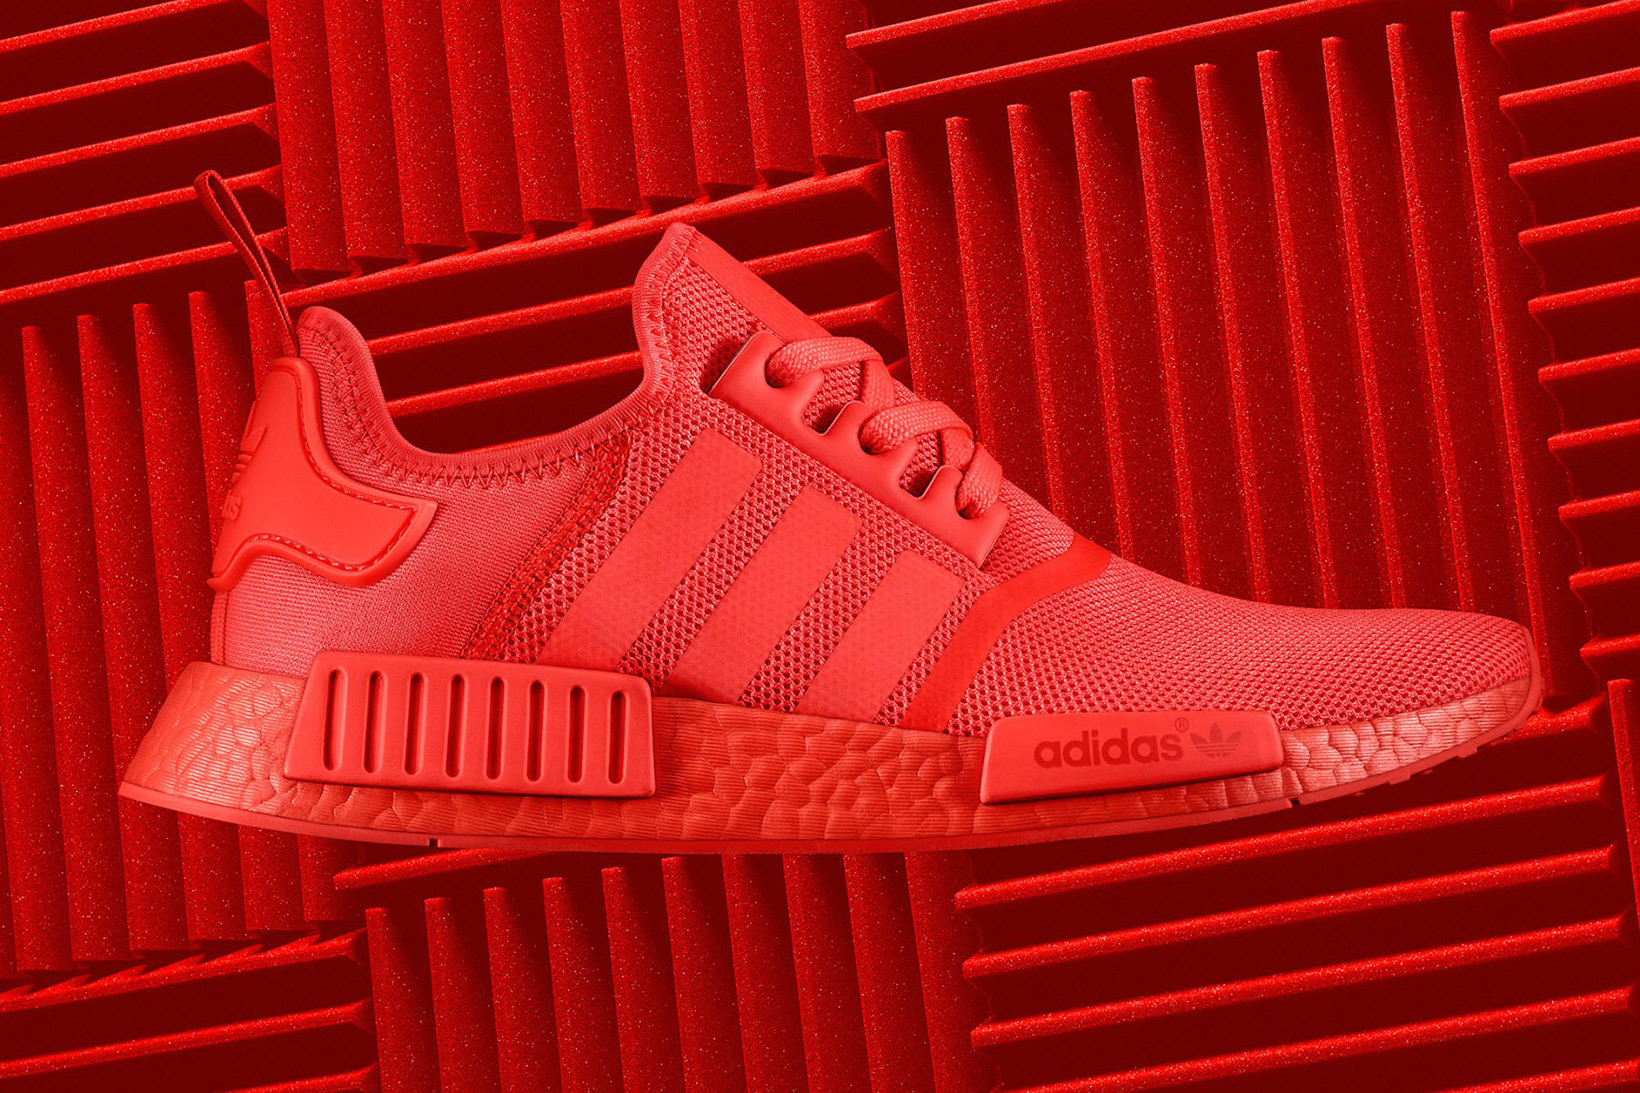 adidas NMD Color Boost Re Release Core Black Solar Red - 1843671